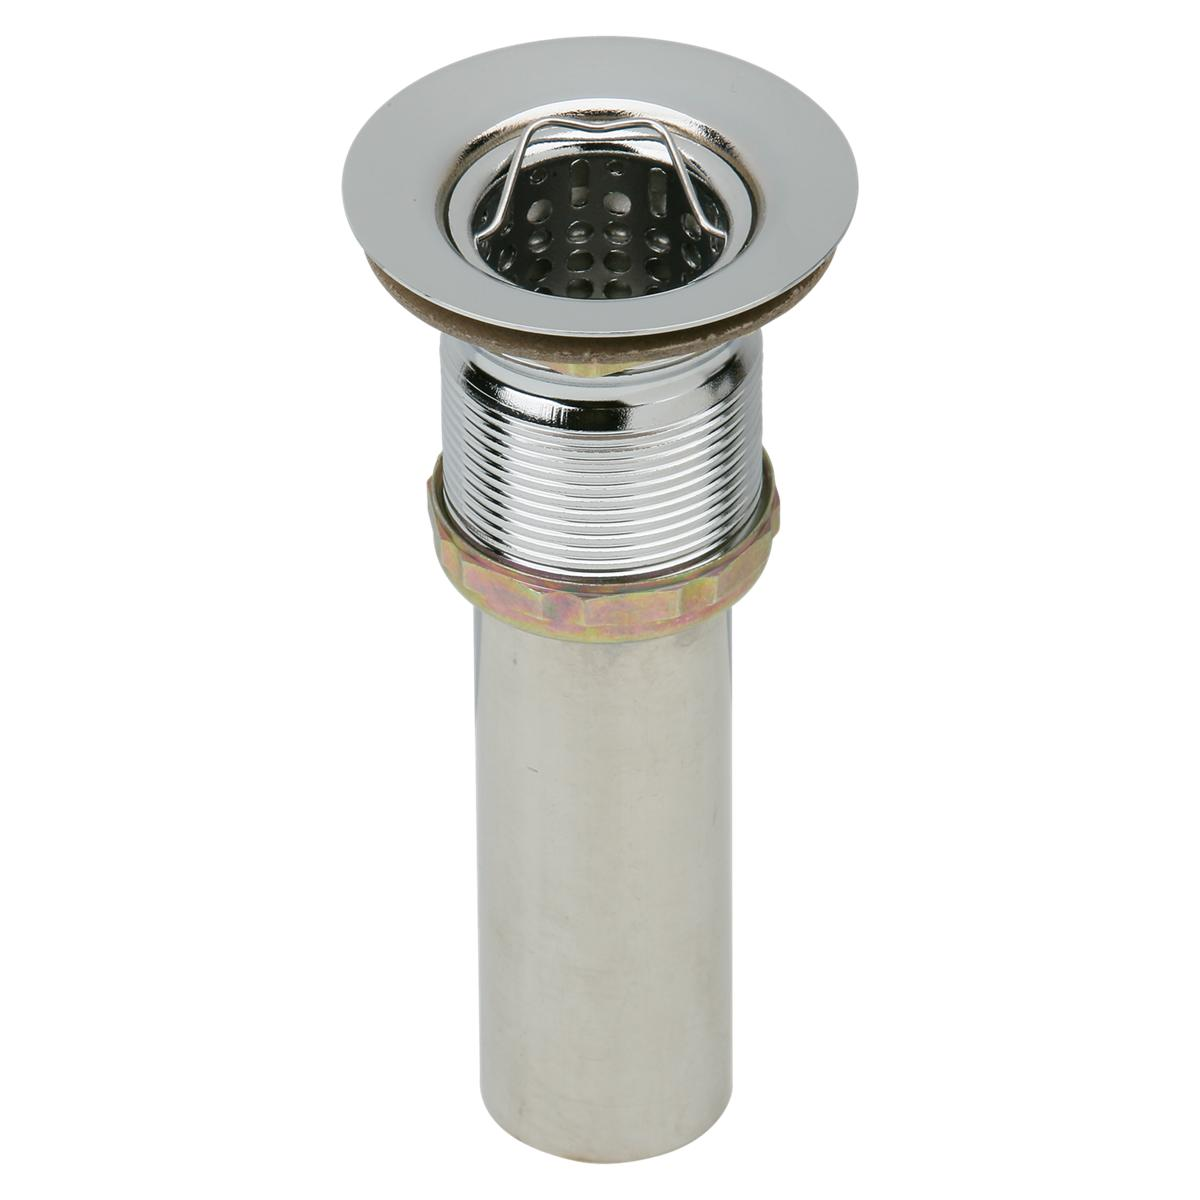 """Elkay Drain Fitting 2"""" Nickel Plated Brass Body With Deep Stainless Steel Strainer Basket 1257428"""